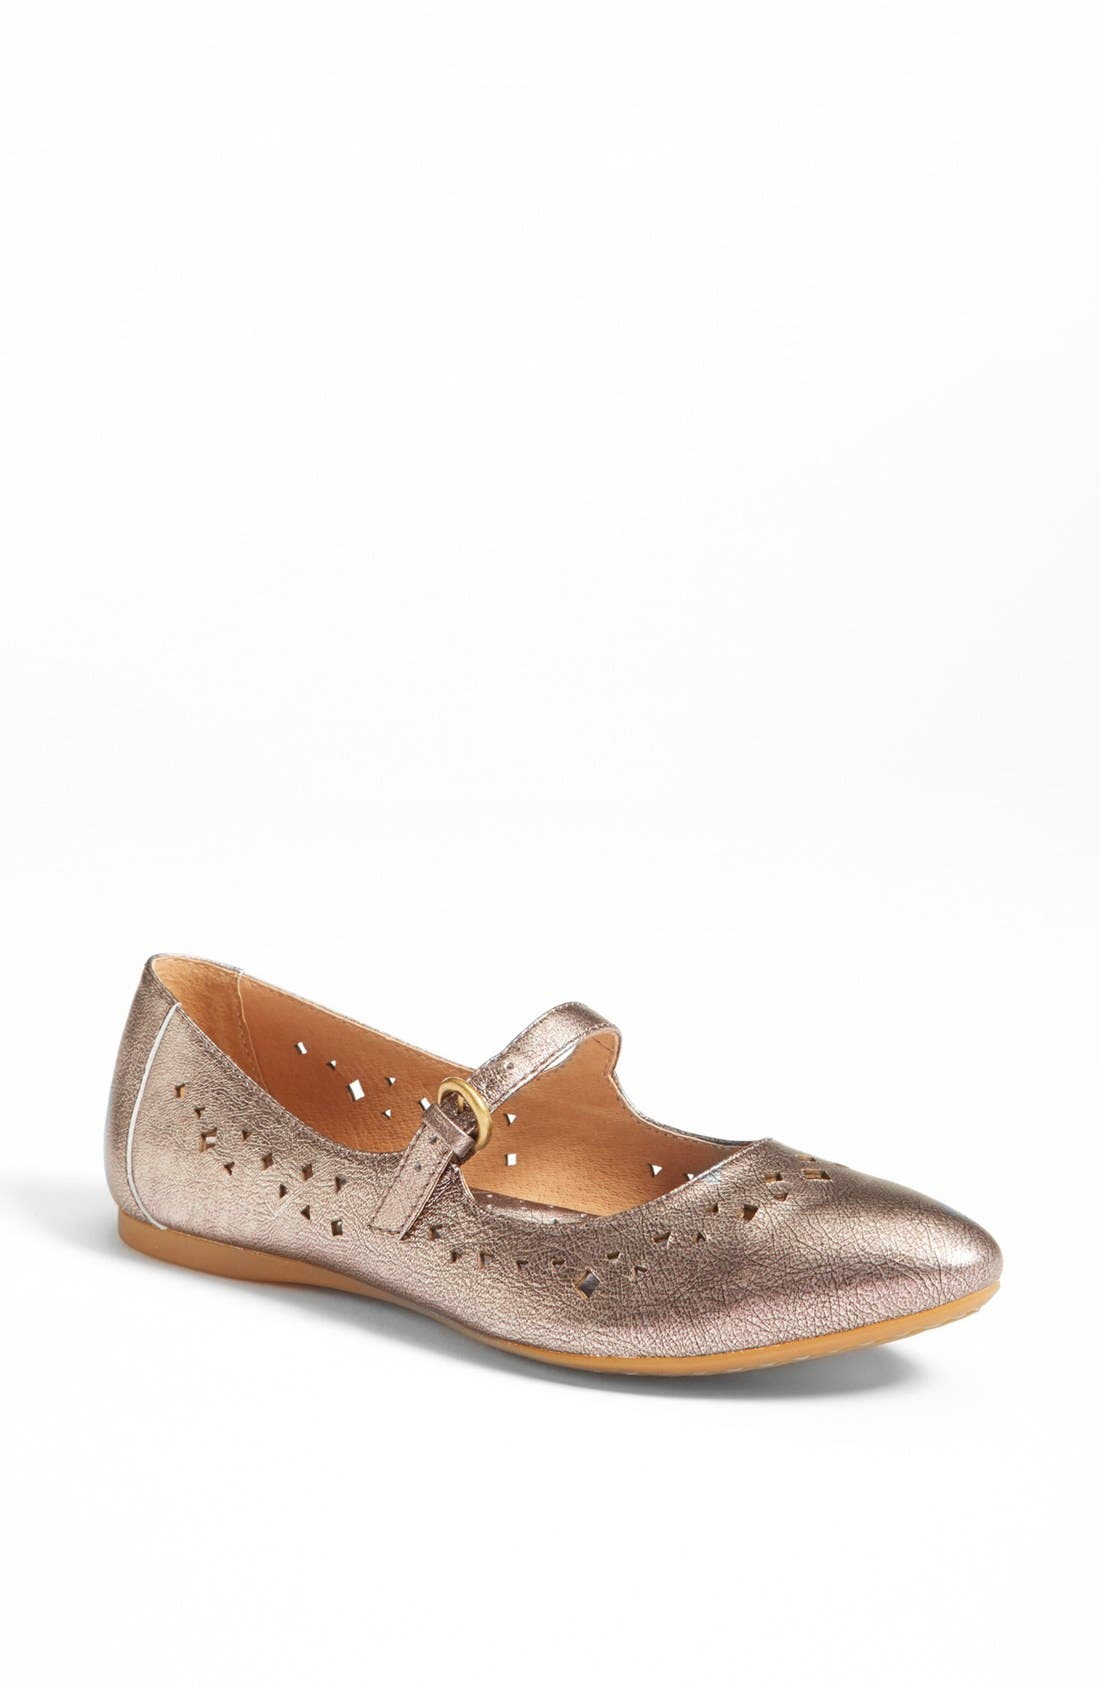 Main Image - Børn 'Linney' Leather Flat